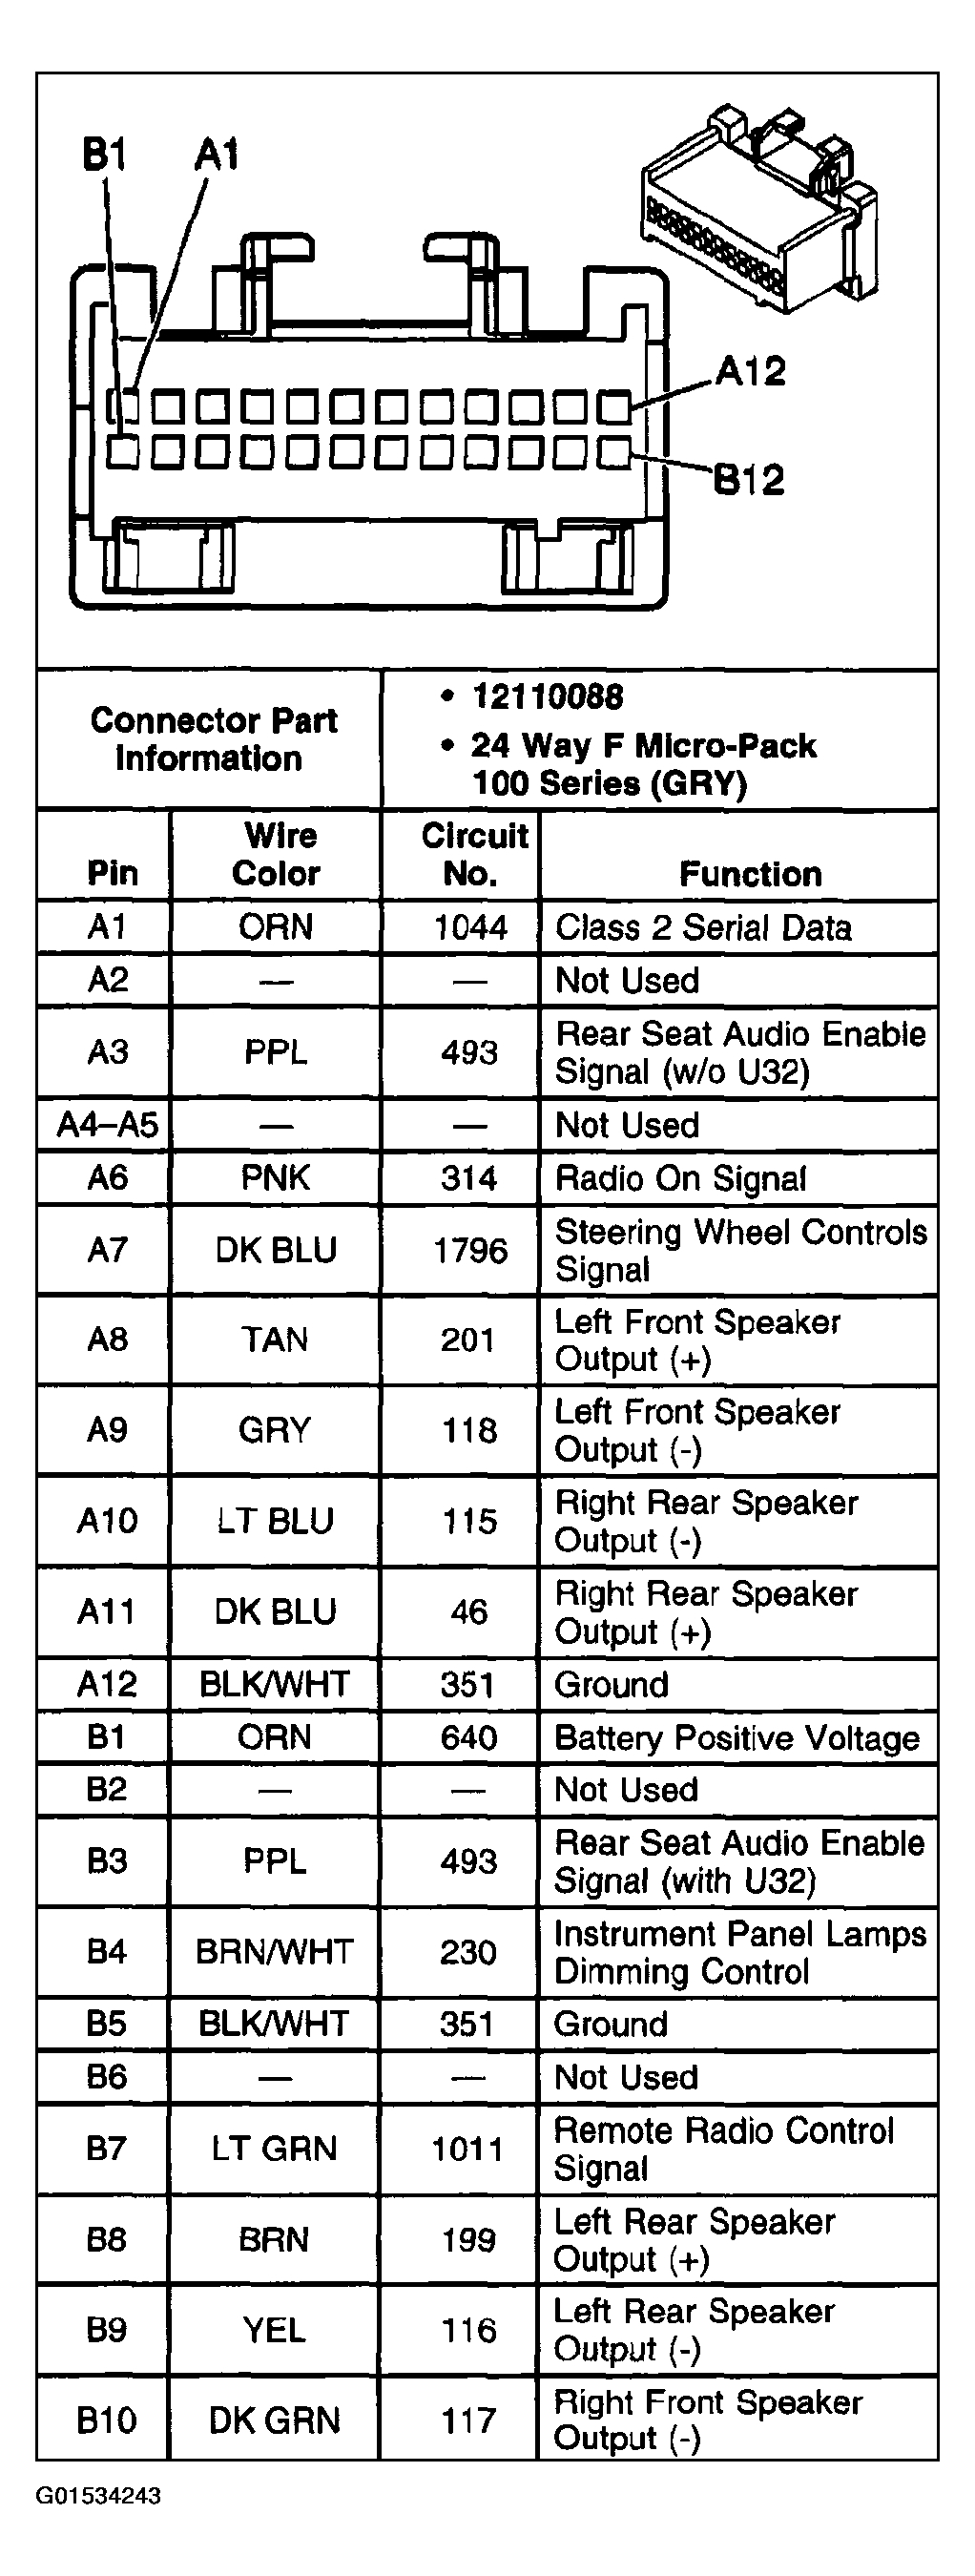 2000 chevy malibu radio wiring diagram Download-2004 Chevy Malibu Radio Wiring Diagram Radio Wiring Harness 2000 Chevy Silverado Door and 2004 4-t